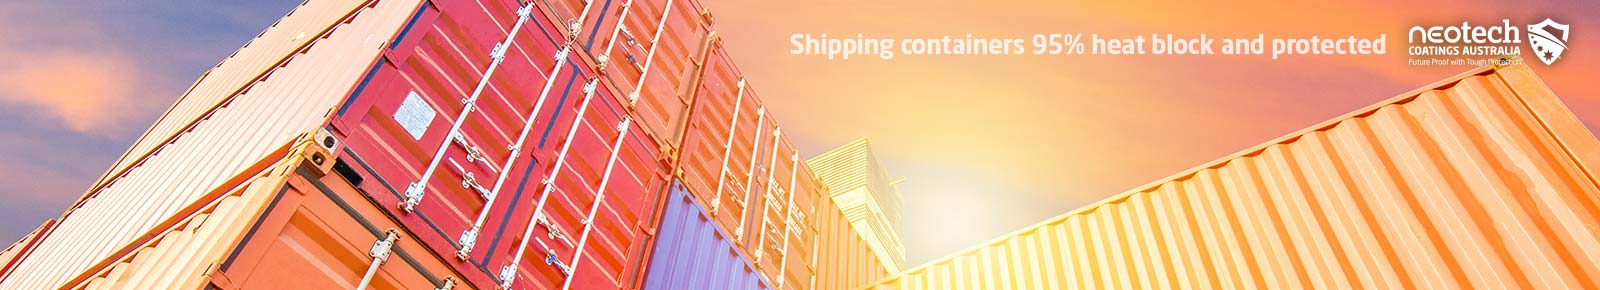 Shipping Containers Solar Heat Protection Coatings banners NEOtech Coatings